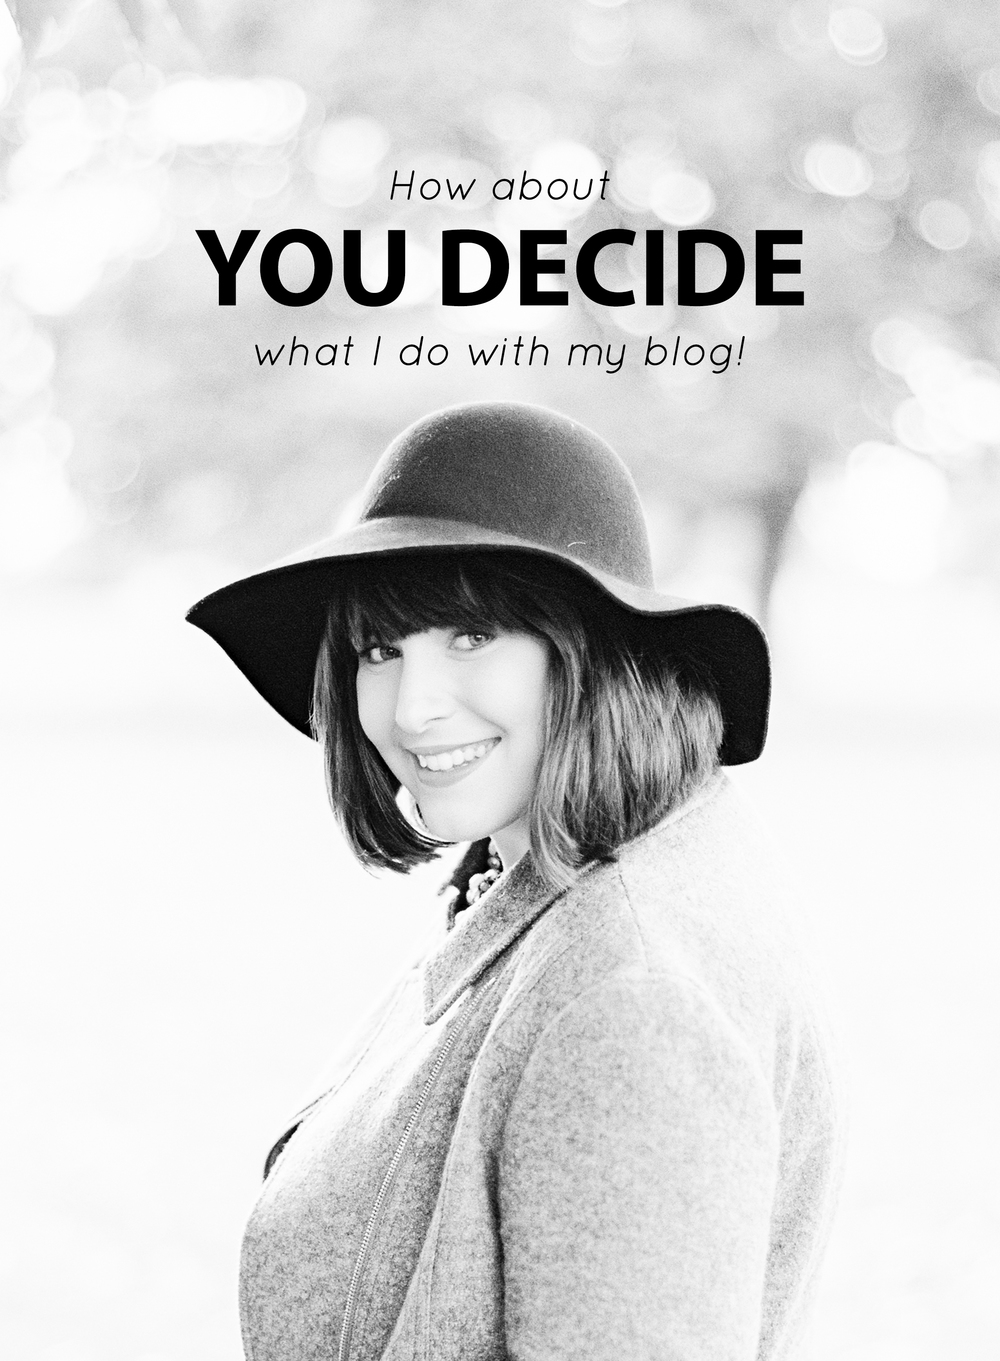 How About you Decide What I do with my Blog - The Jordan Brittley Blog (www.jordanbrittleyblog.com)